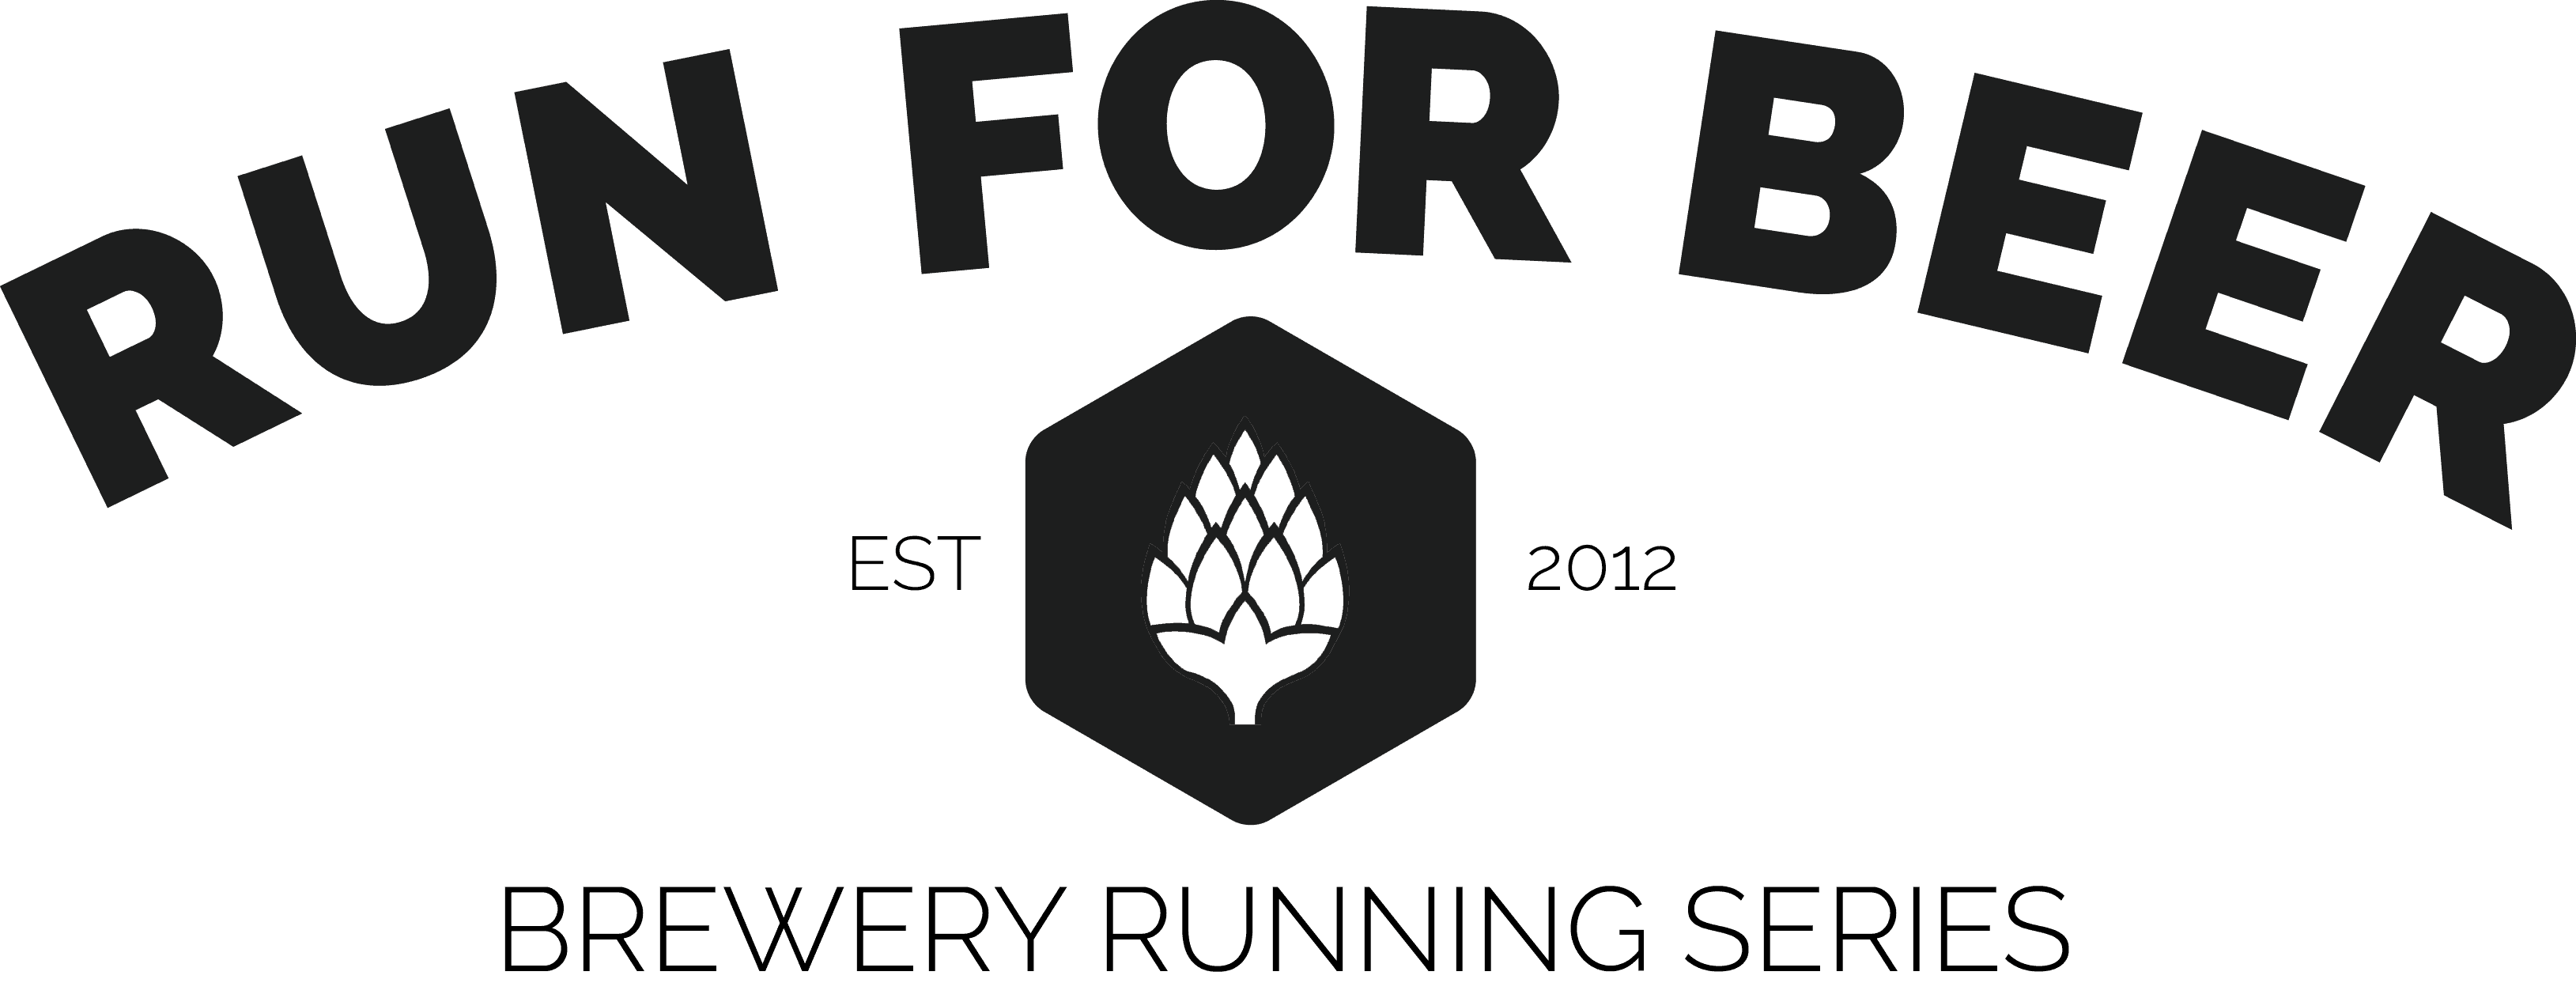 Texas Brewery Running Series